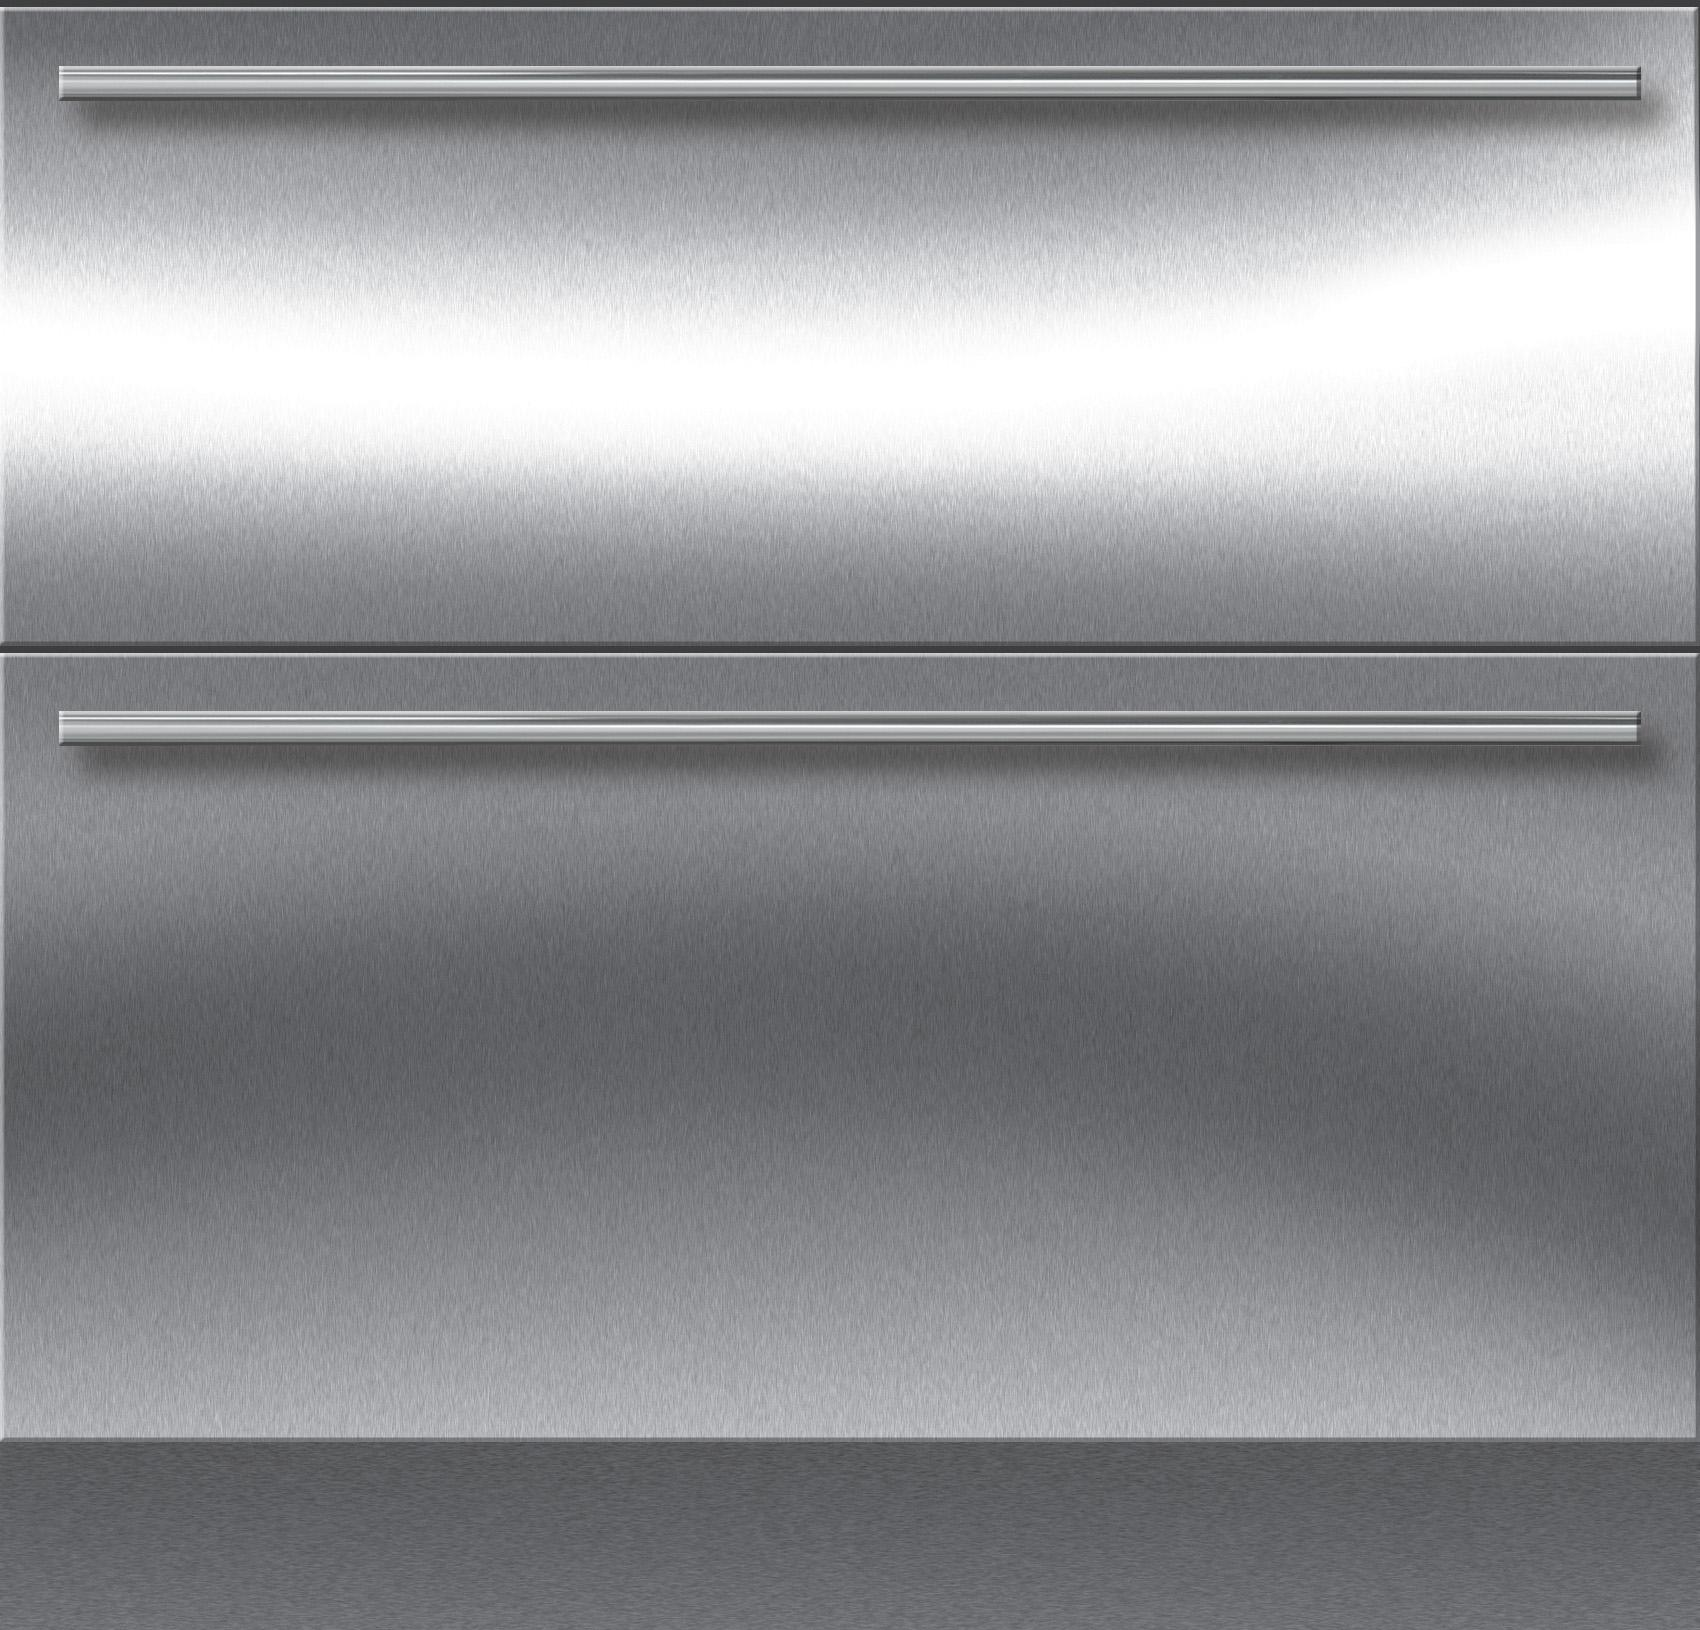 """Integrated Refrigeration 36"""" Refrigerator Drawer by Sub-Zero at Furniture and ApplianceMart"""